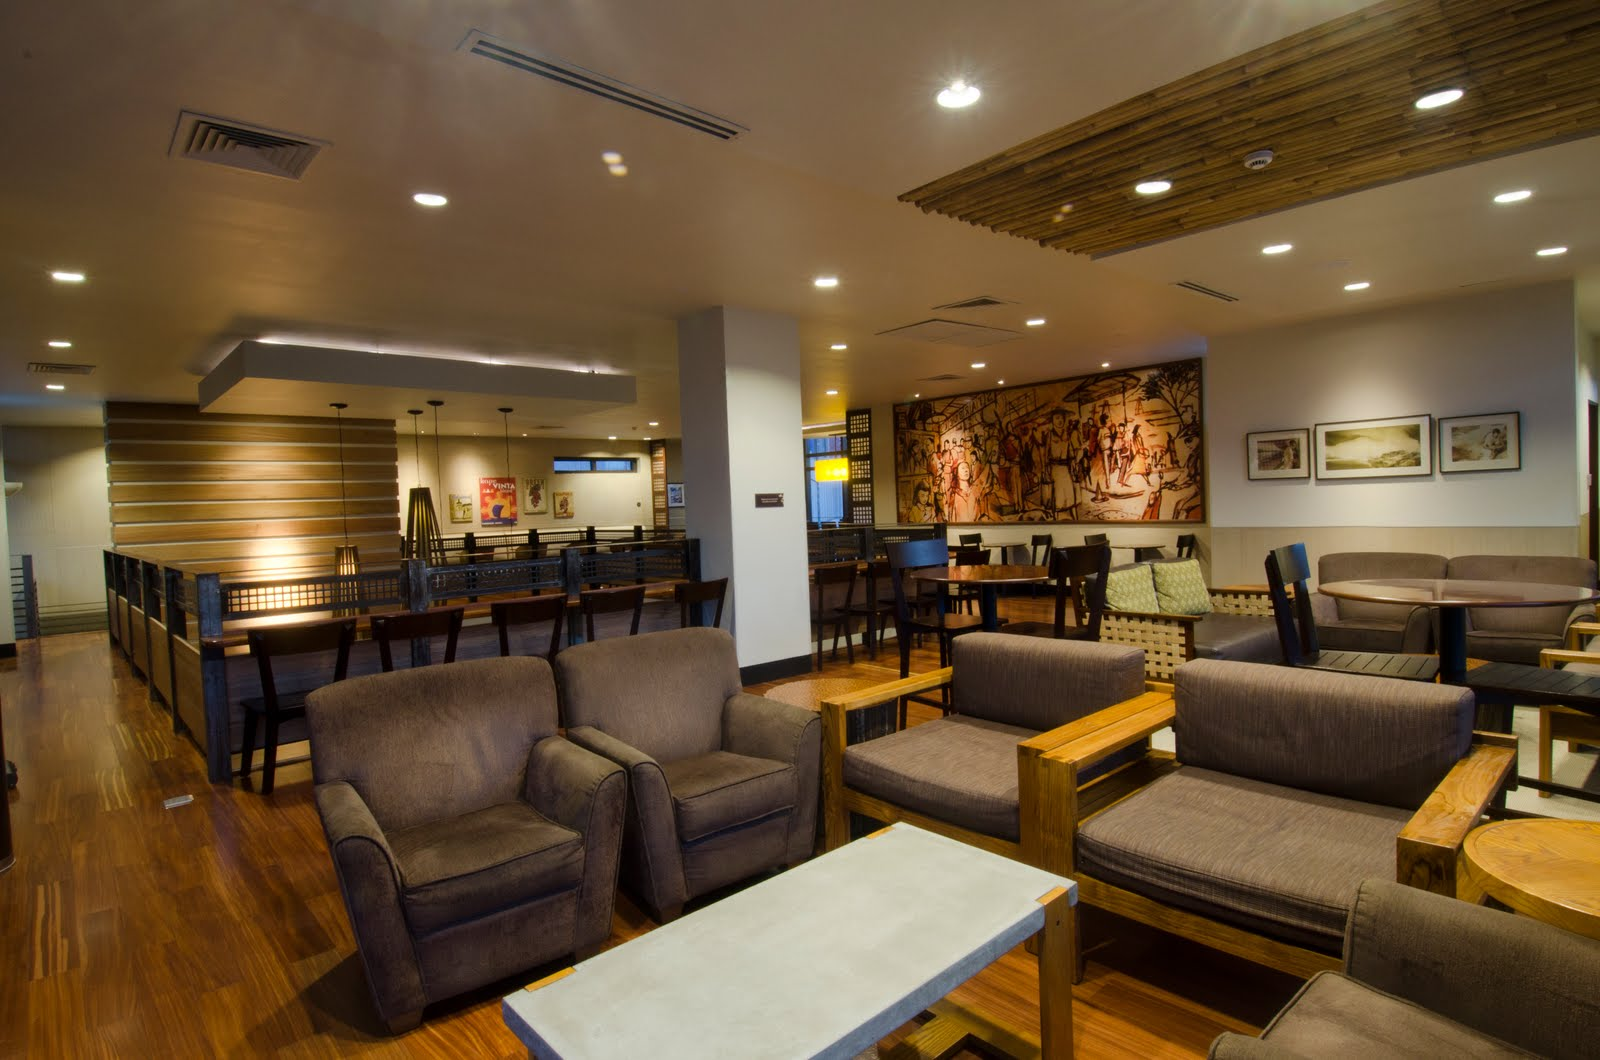 Starbucks intros new global store-design strategy